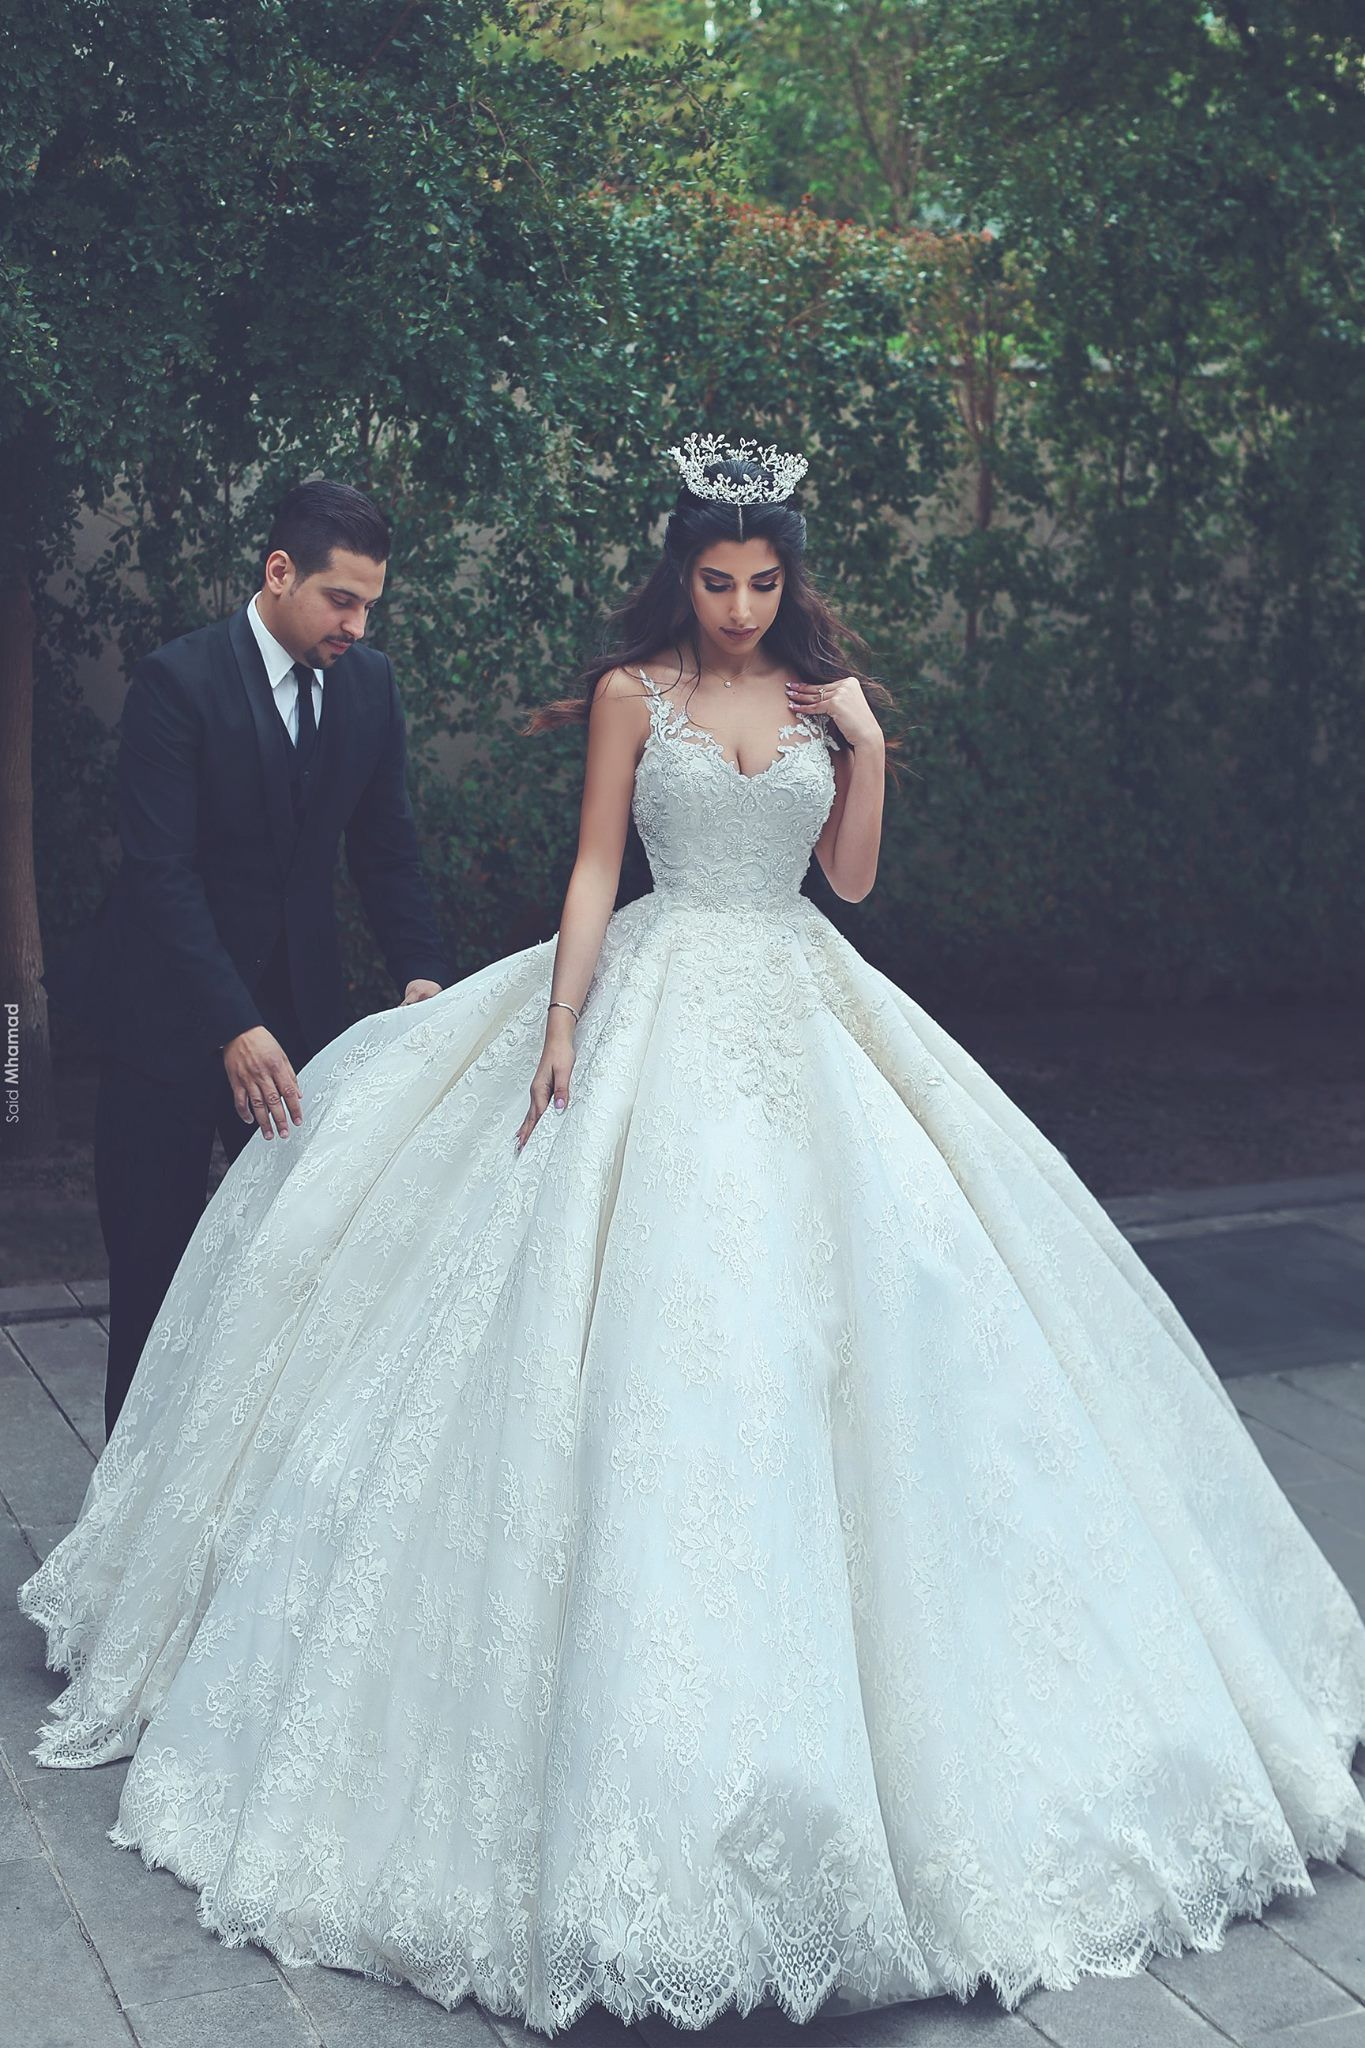 Said Mhamed Photography Ball Gowns Wedding Ball Gown Wedding Dress Wedding Dresses Princess Ballgown